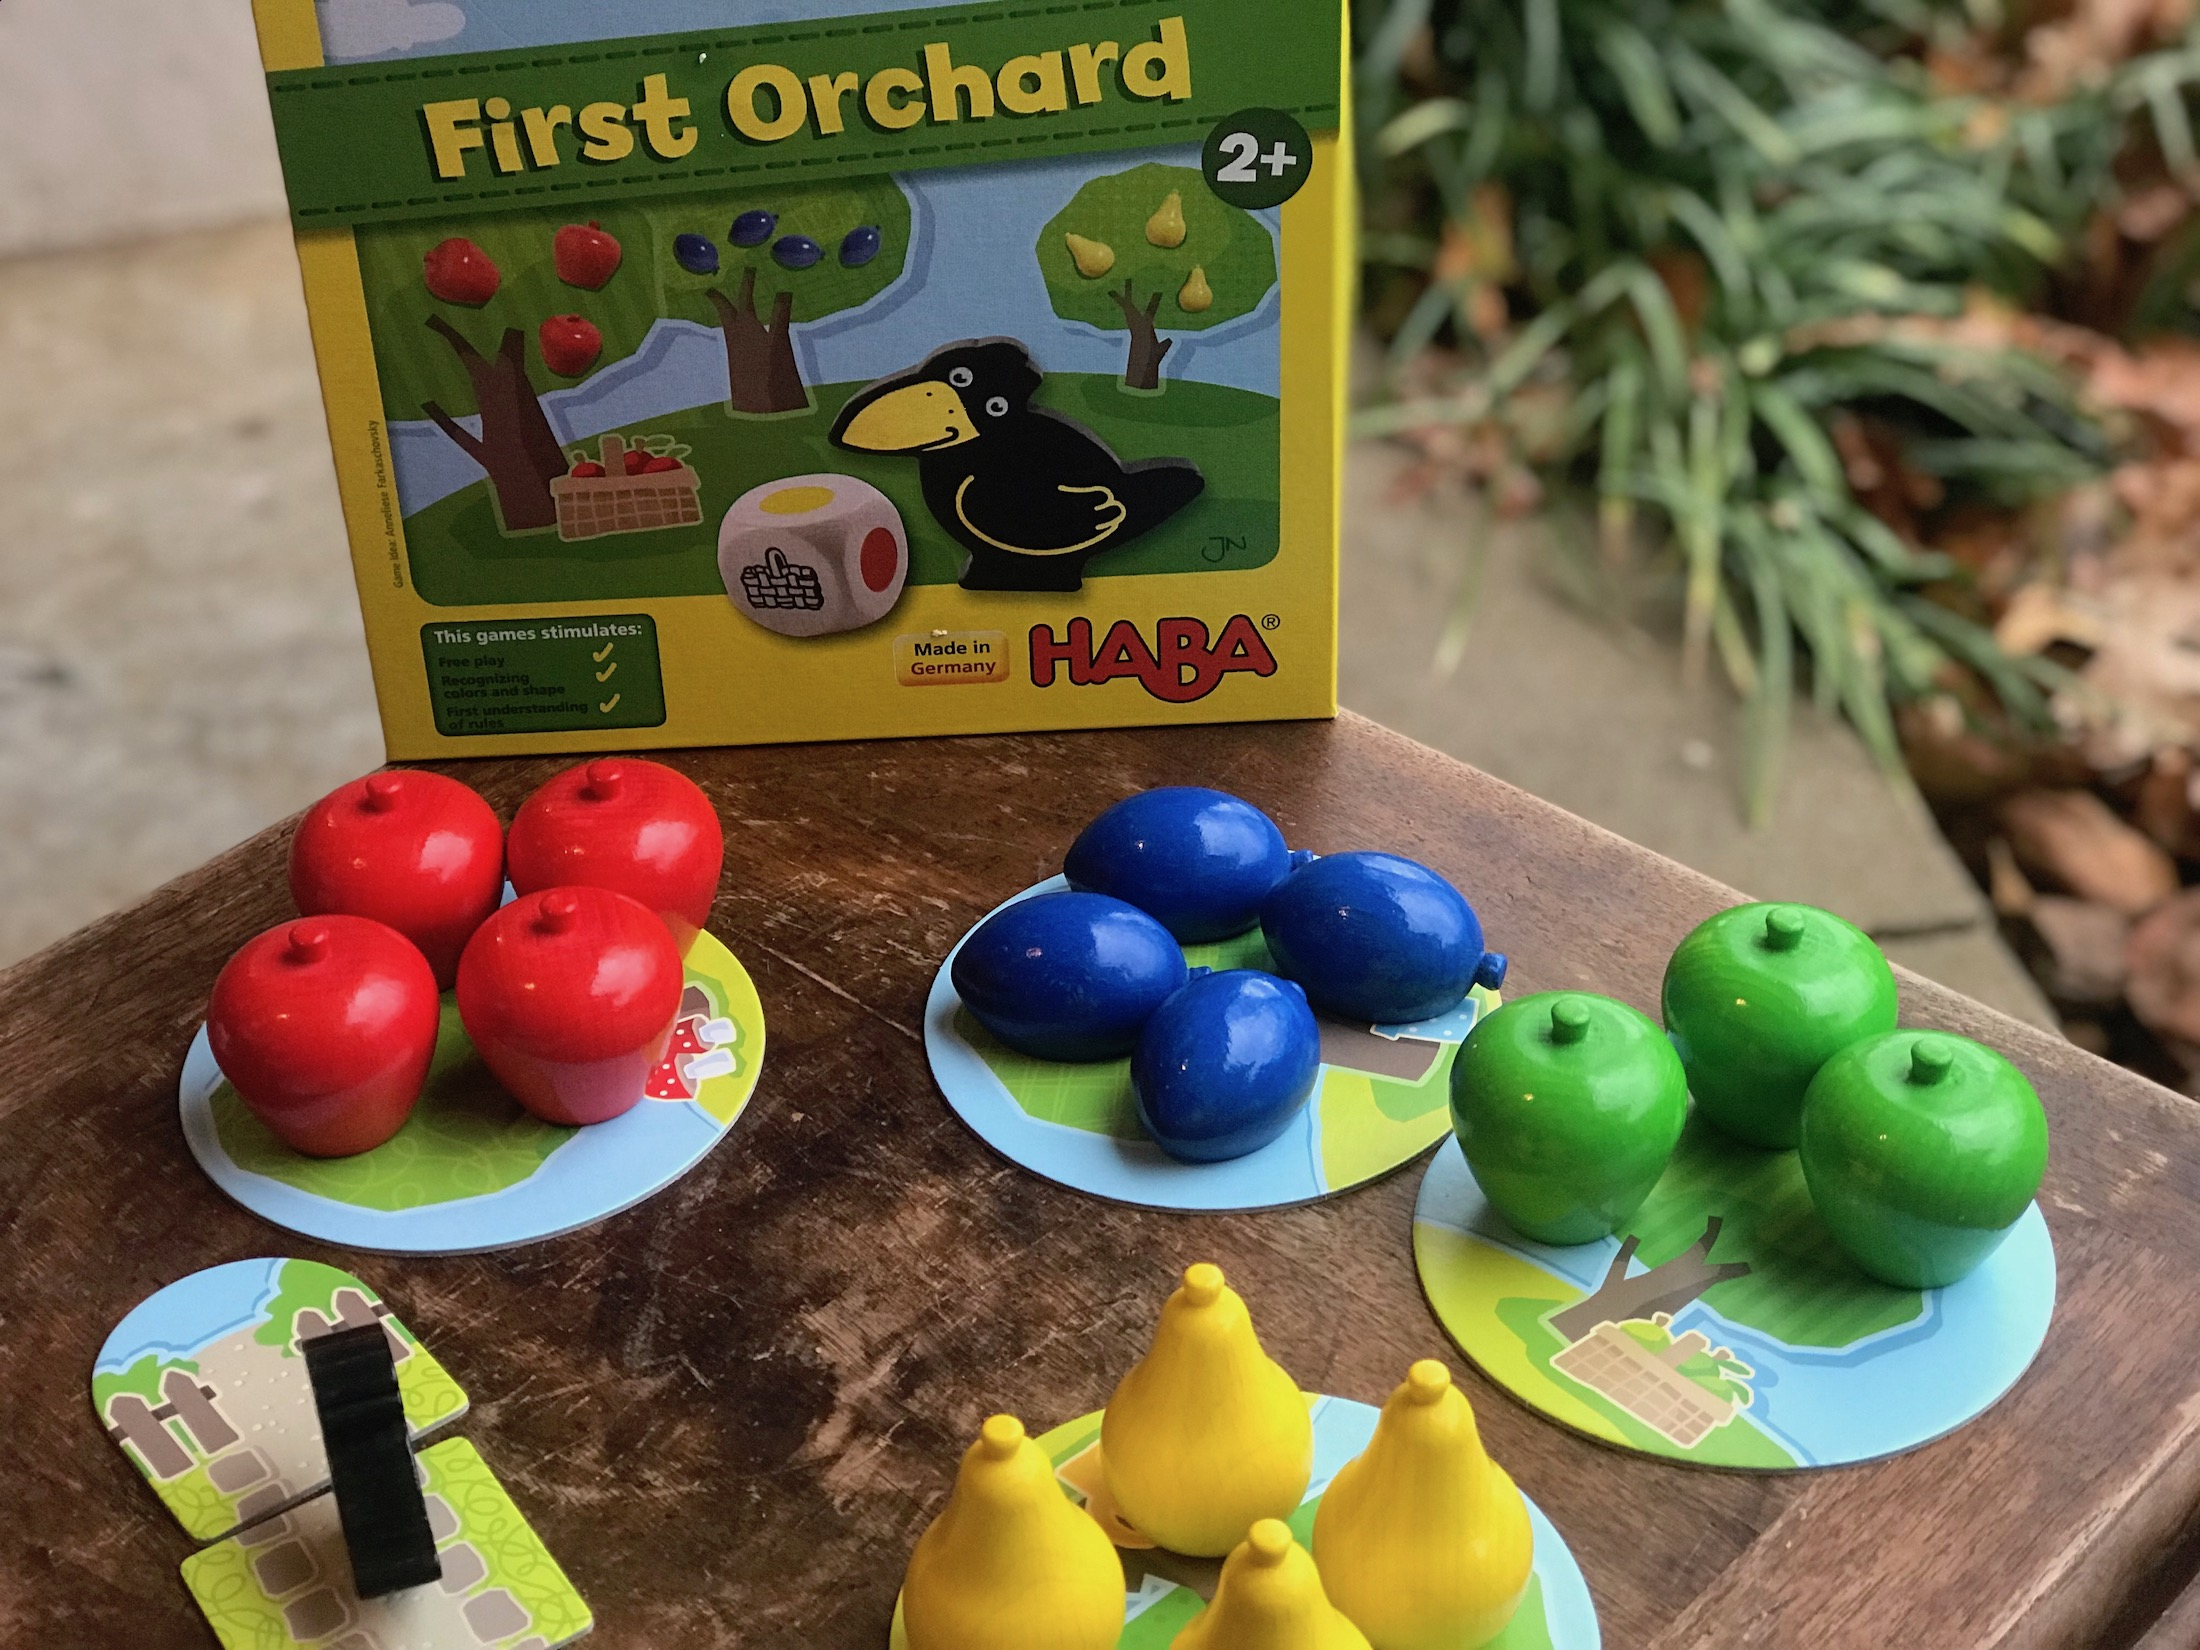 first orchard haba board game for kids.jpeg